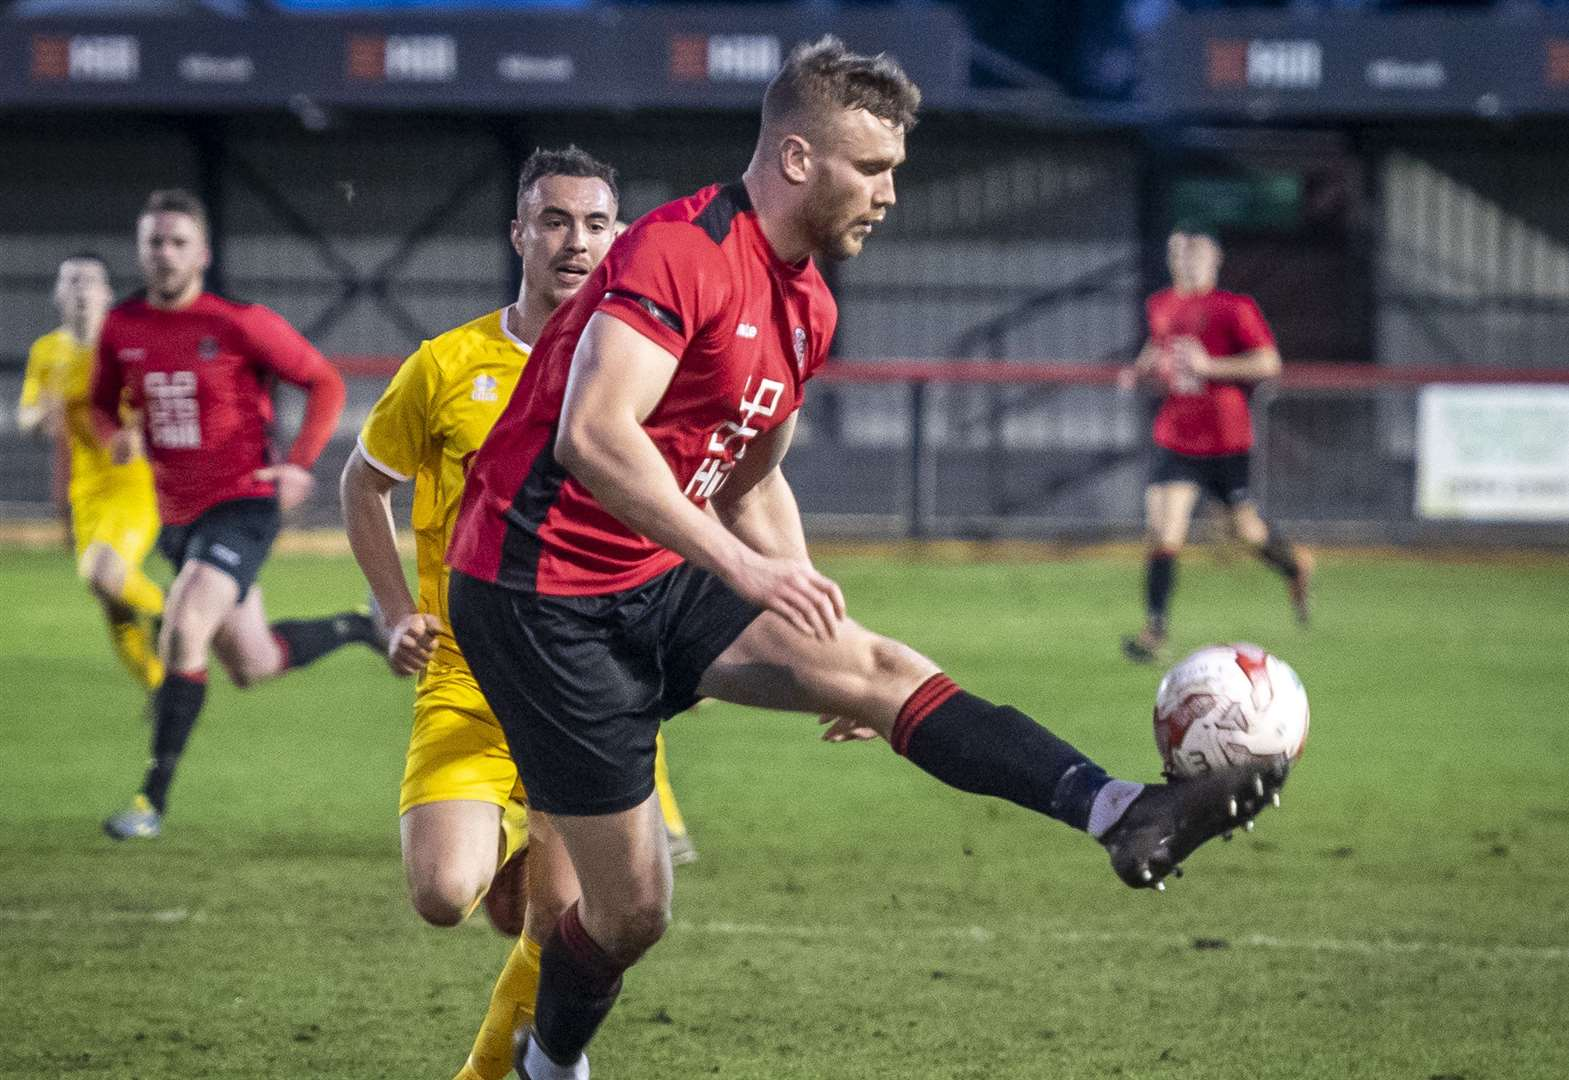 Ed Rolph heads home to earn Histon a point at Kirkley & Pakefield